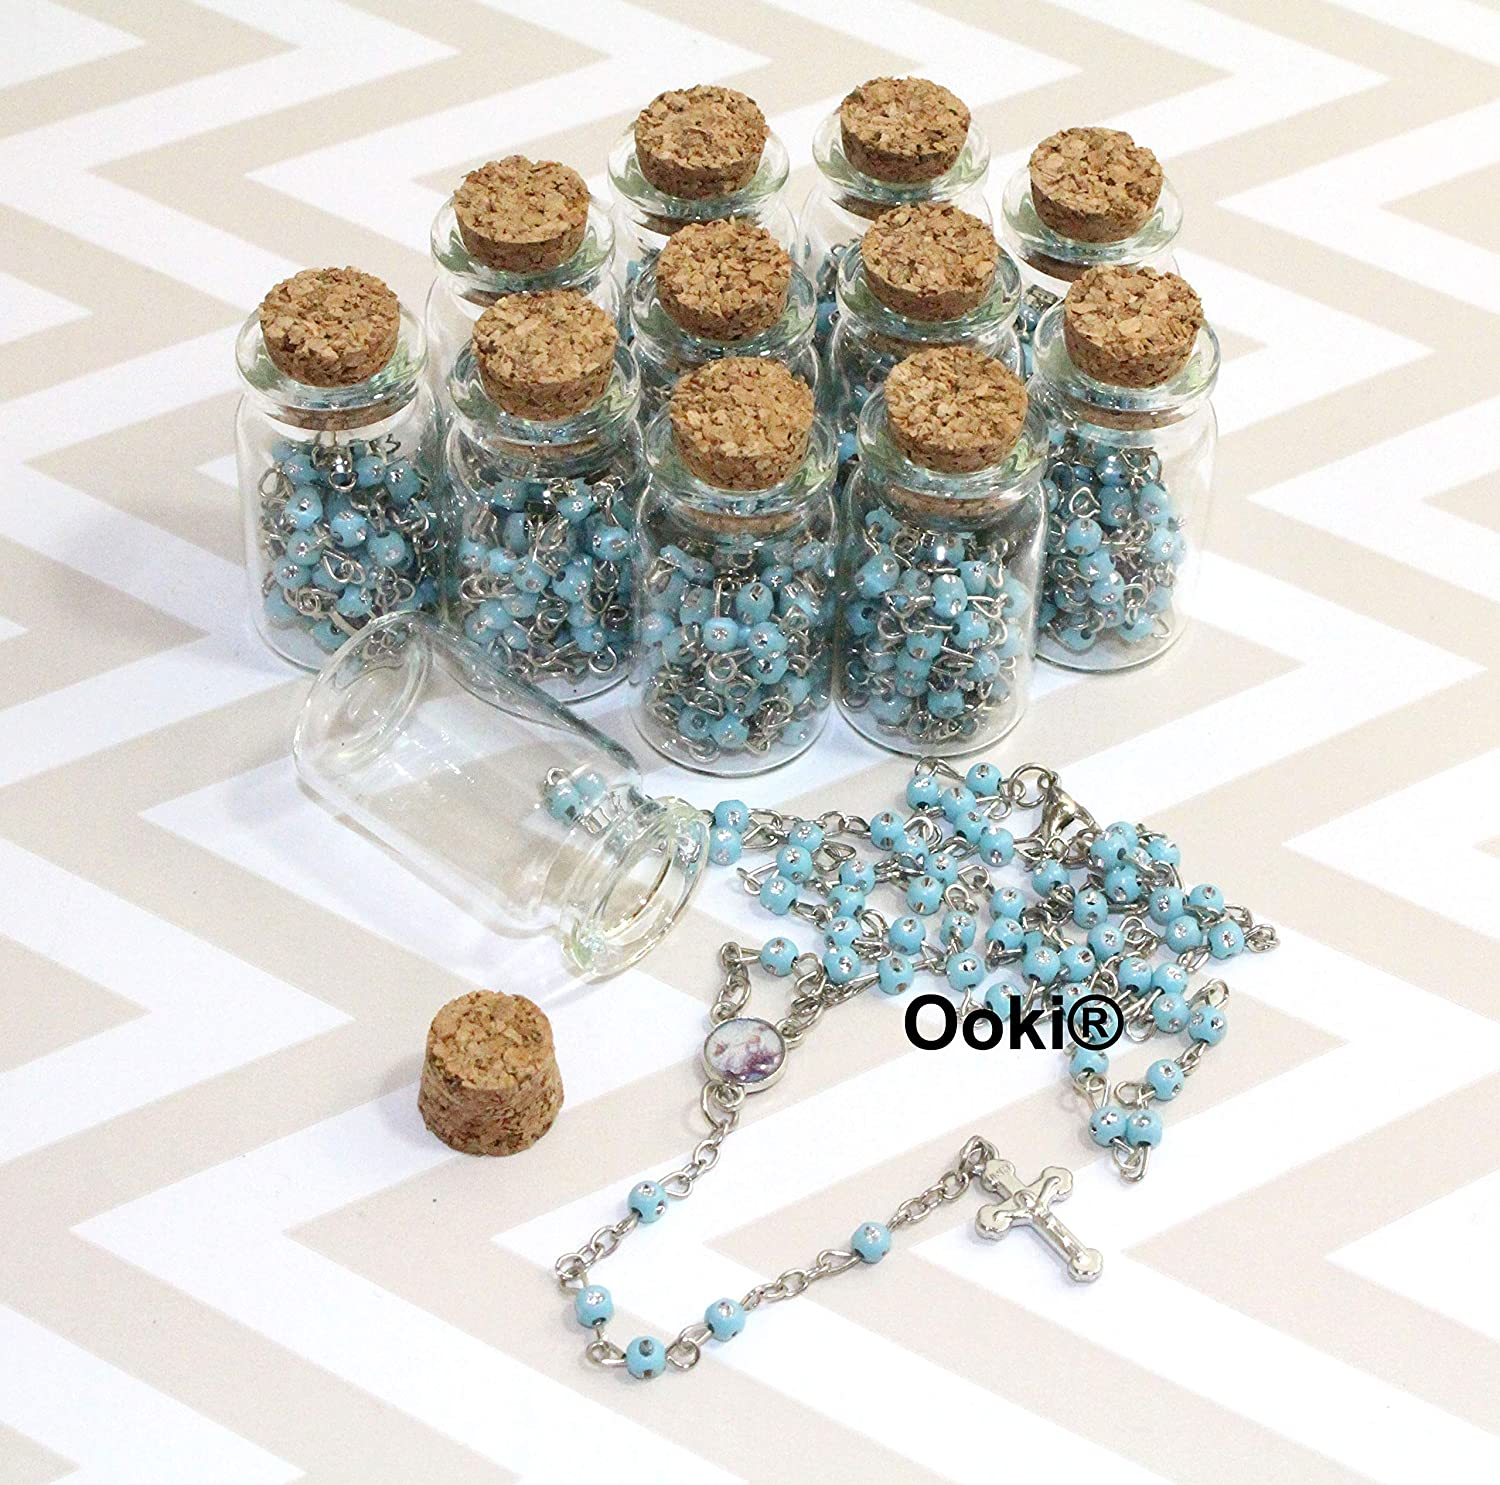 12 full size rosaries in cute glass jars for Baptism favors White and gold plated//recuerdos de bautizo//Rosario completo//communion favors